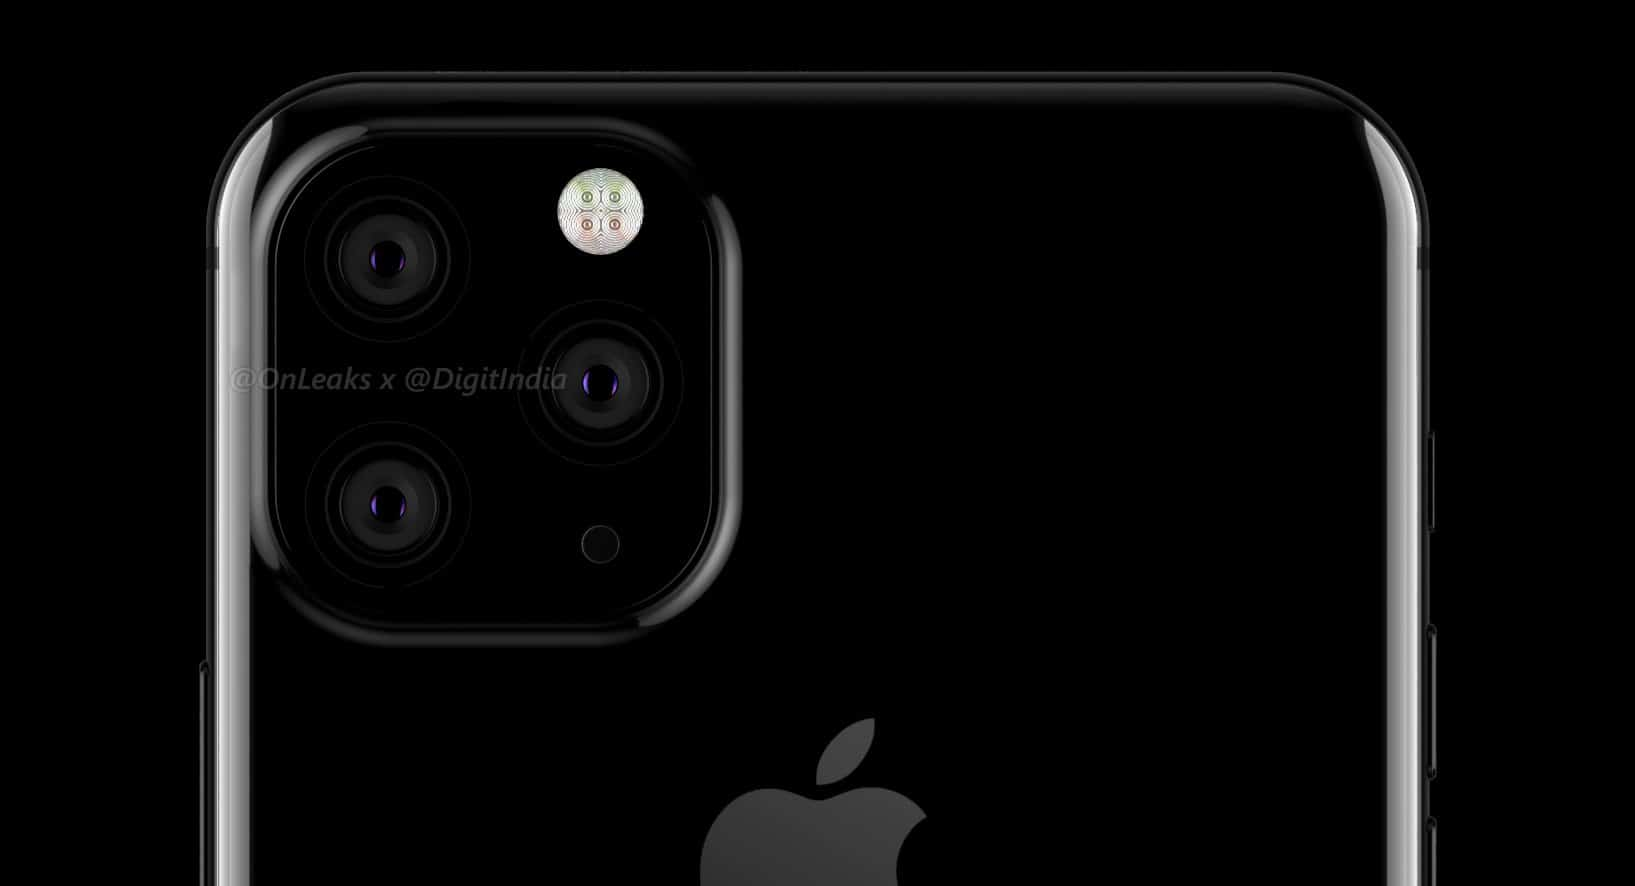 enders-allegedly-reveal-design-of-2019-iphone-xi-with-three-cameras-video-2